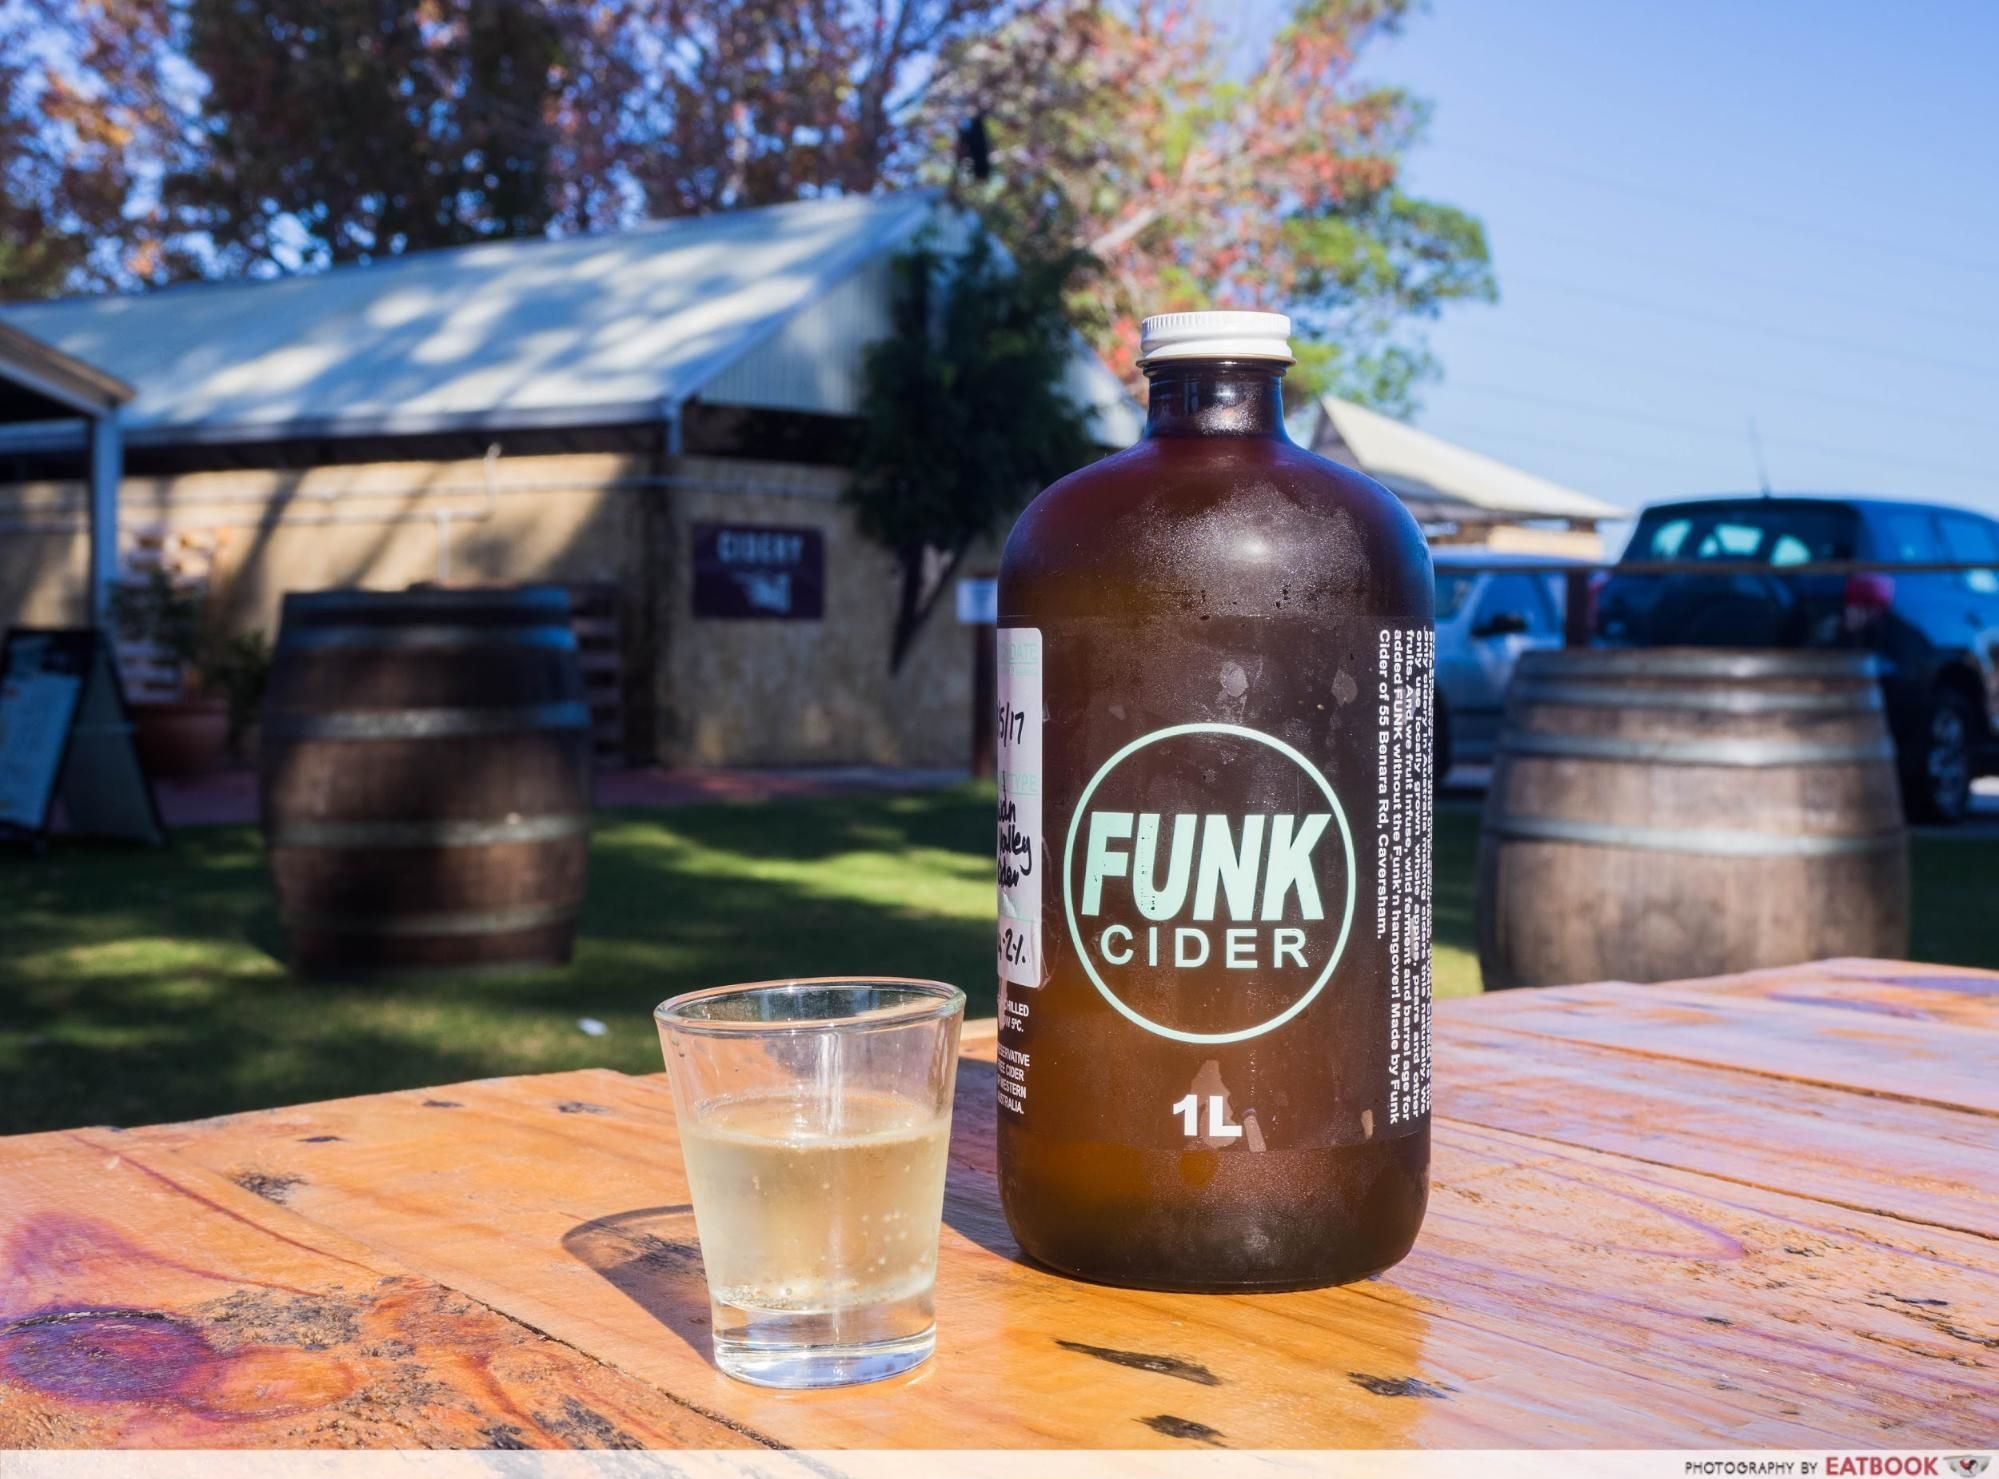 swan valley - funk cider